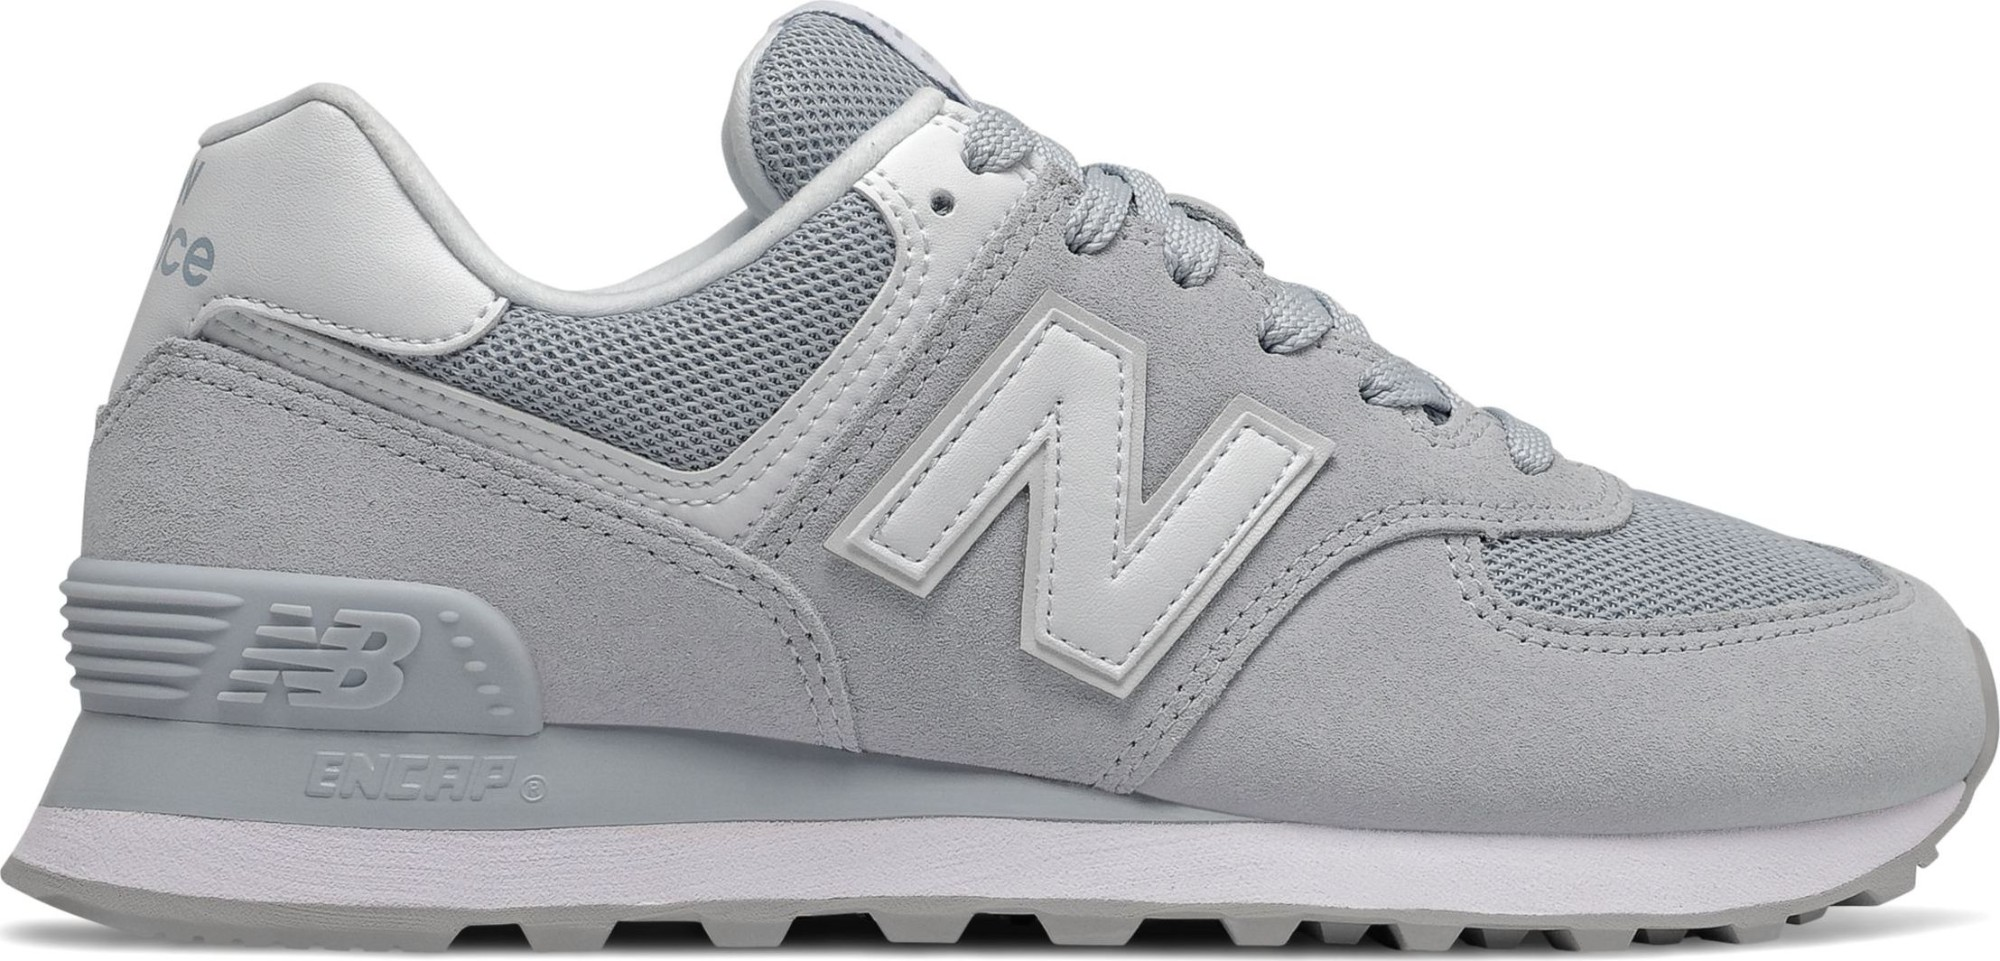 New Balance WL574 Nubuck Grey/White 39